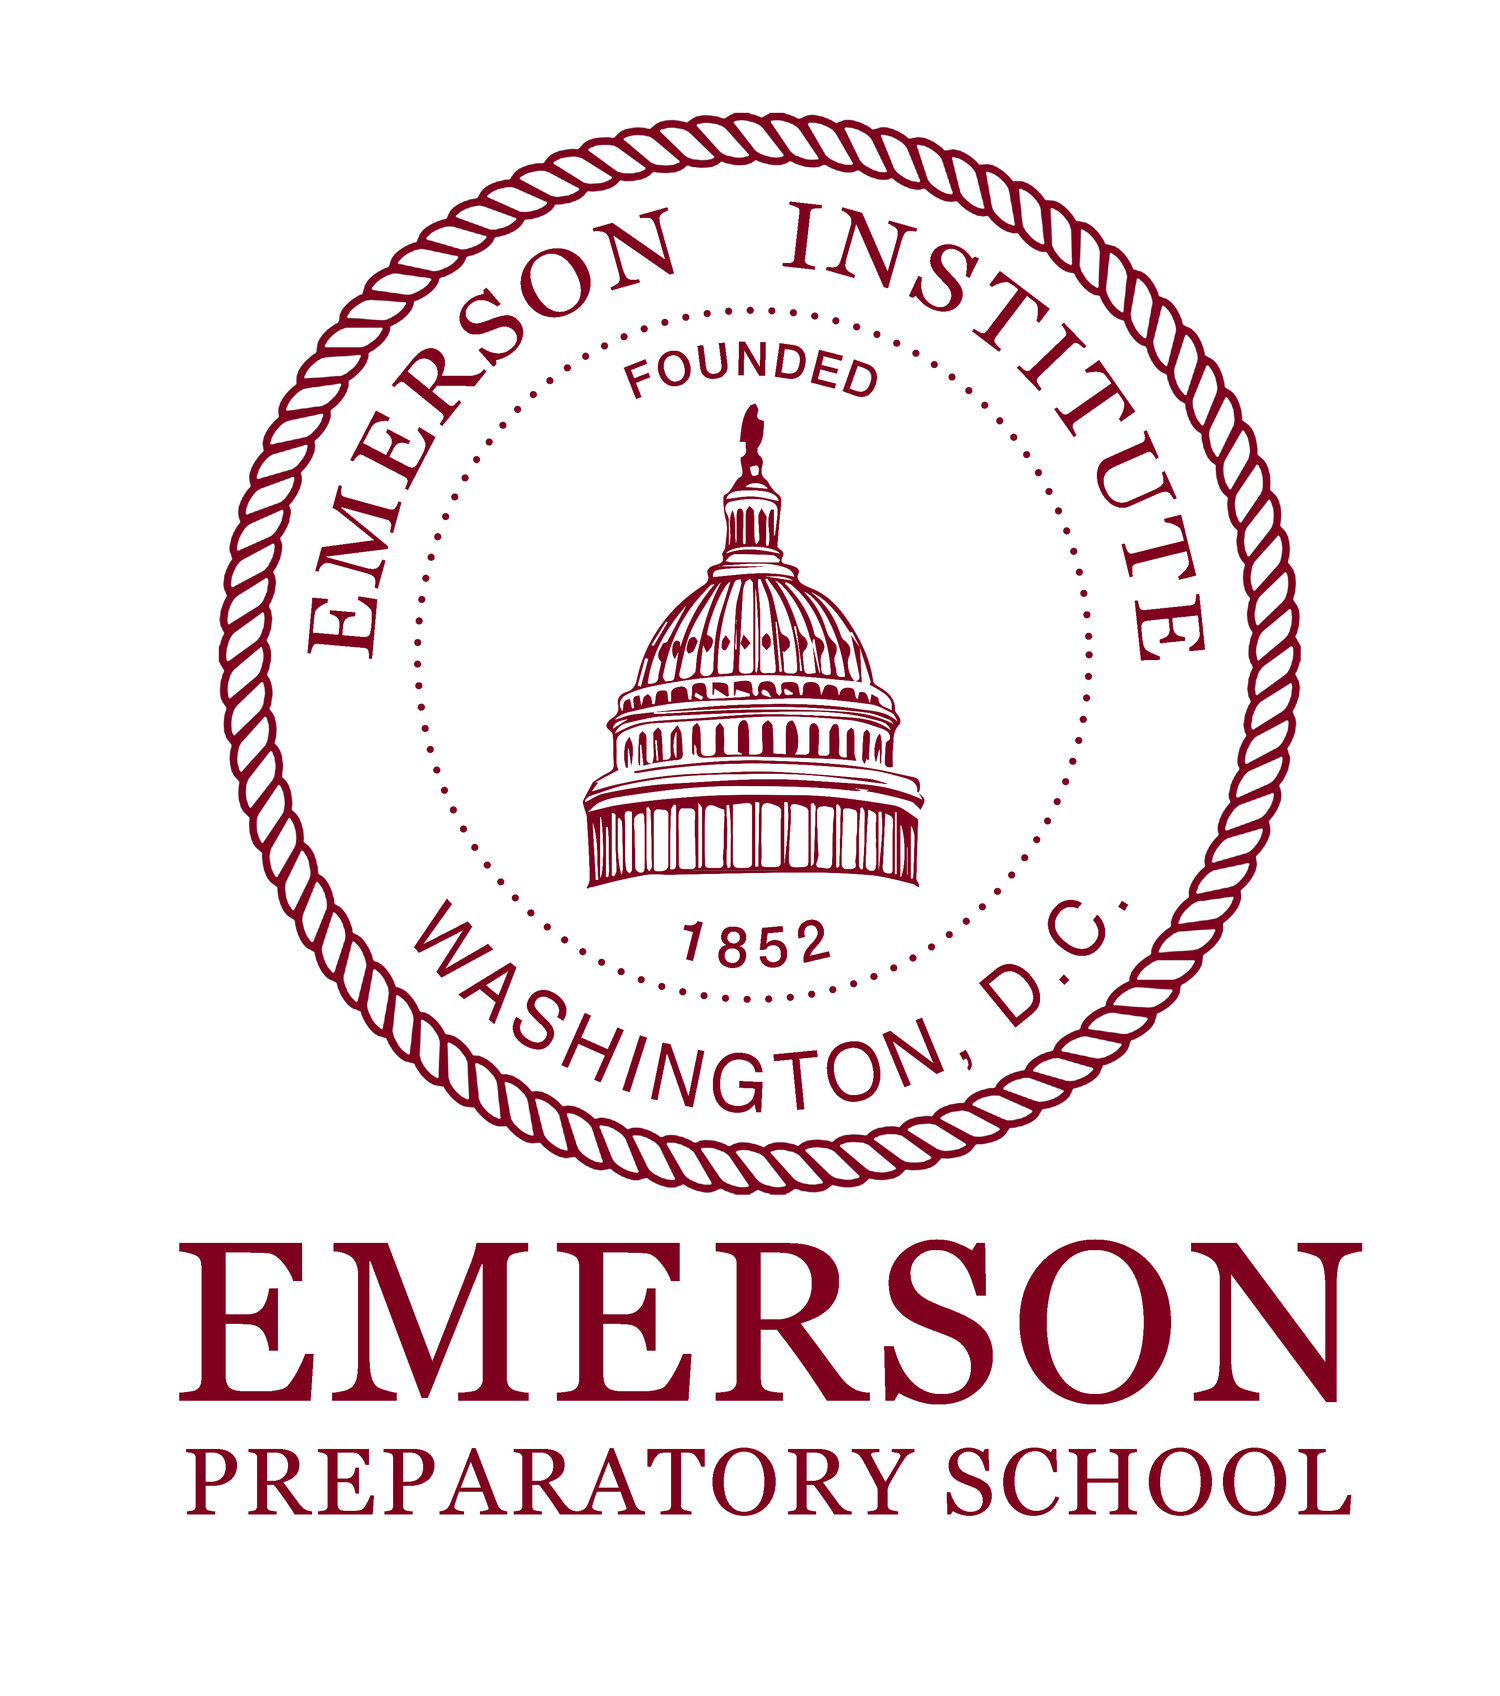 Emerson Preparatory School